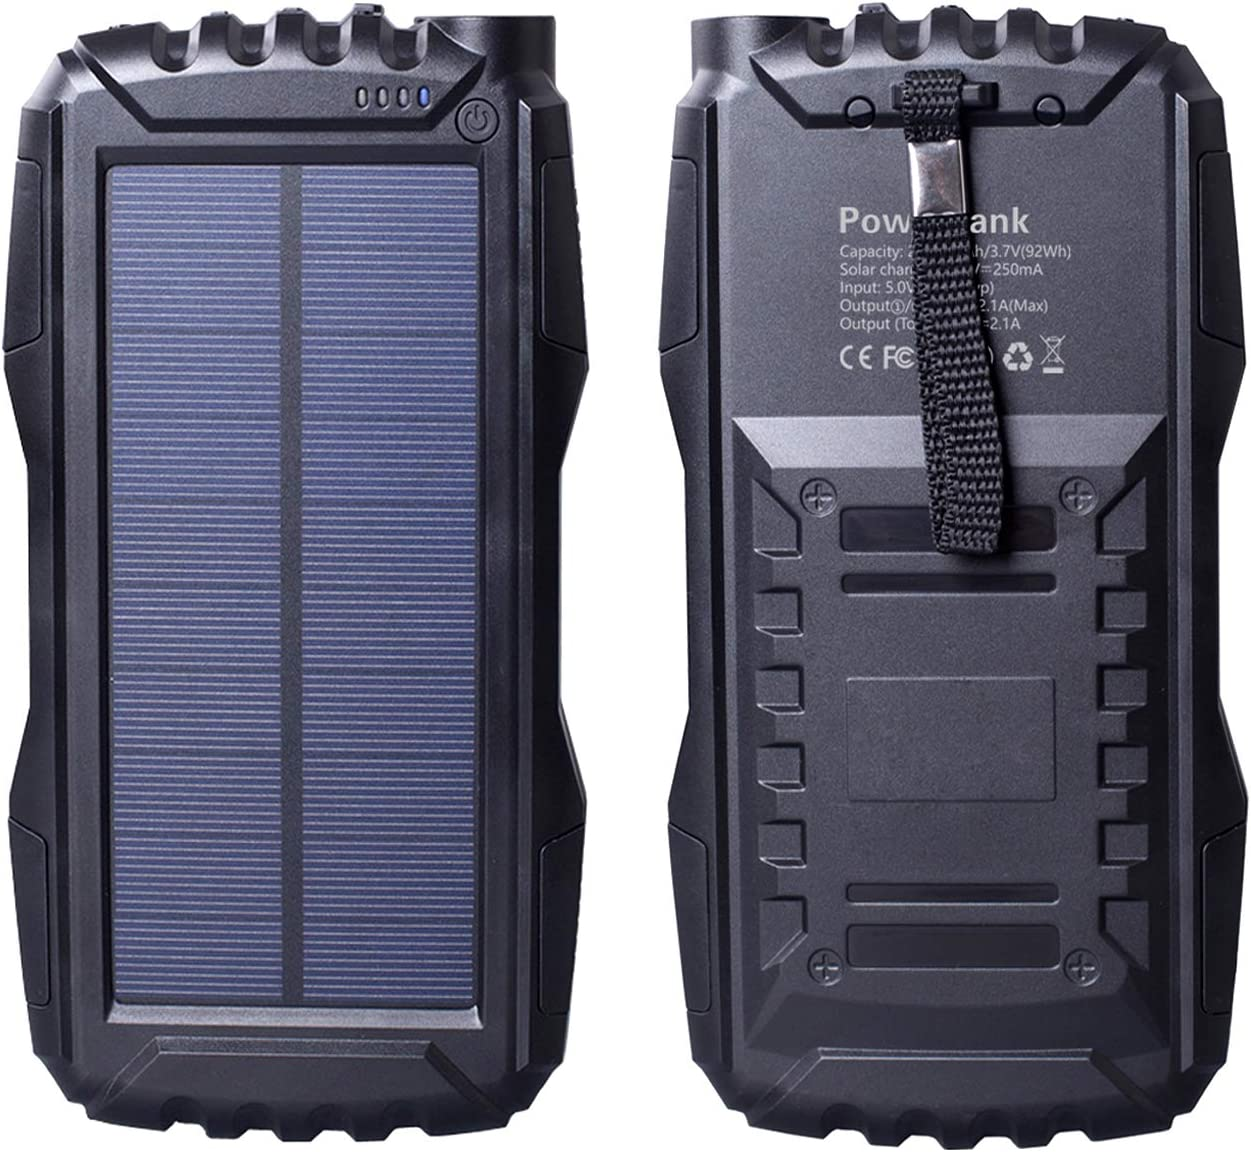 Gootu Friengood Solar Charger 25000mAh, Portable Solar Power Bank with Dual USB Port, Outdoor Solar Phone Battery Charger with LED Flashlight for iPhone, iPad, Android Cellphones and More Black